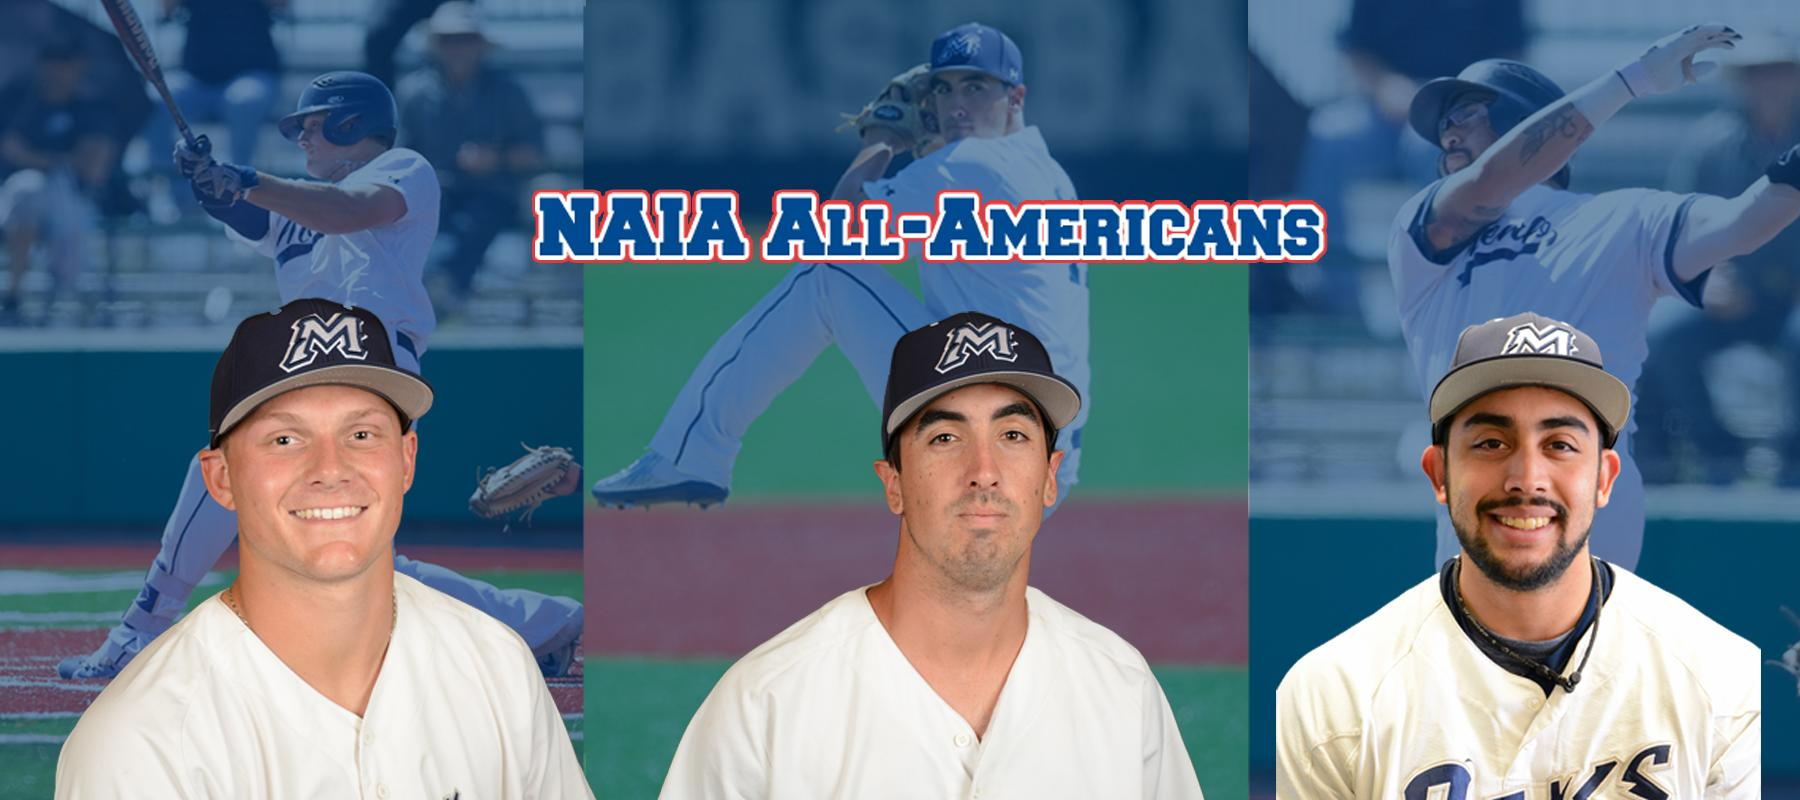 Getzelman Second Team, Alexander and Jarrard Honorable Mention All-Americans